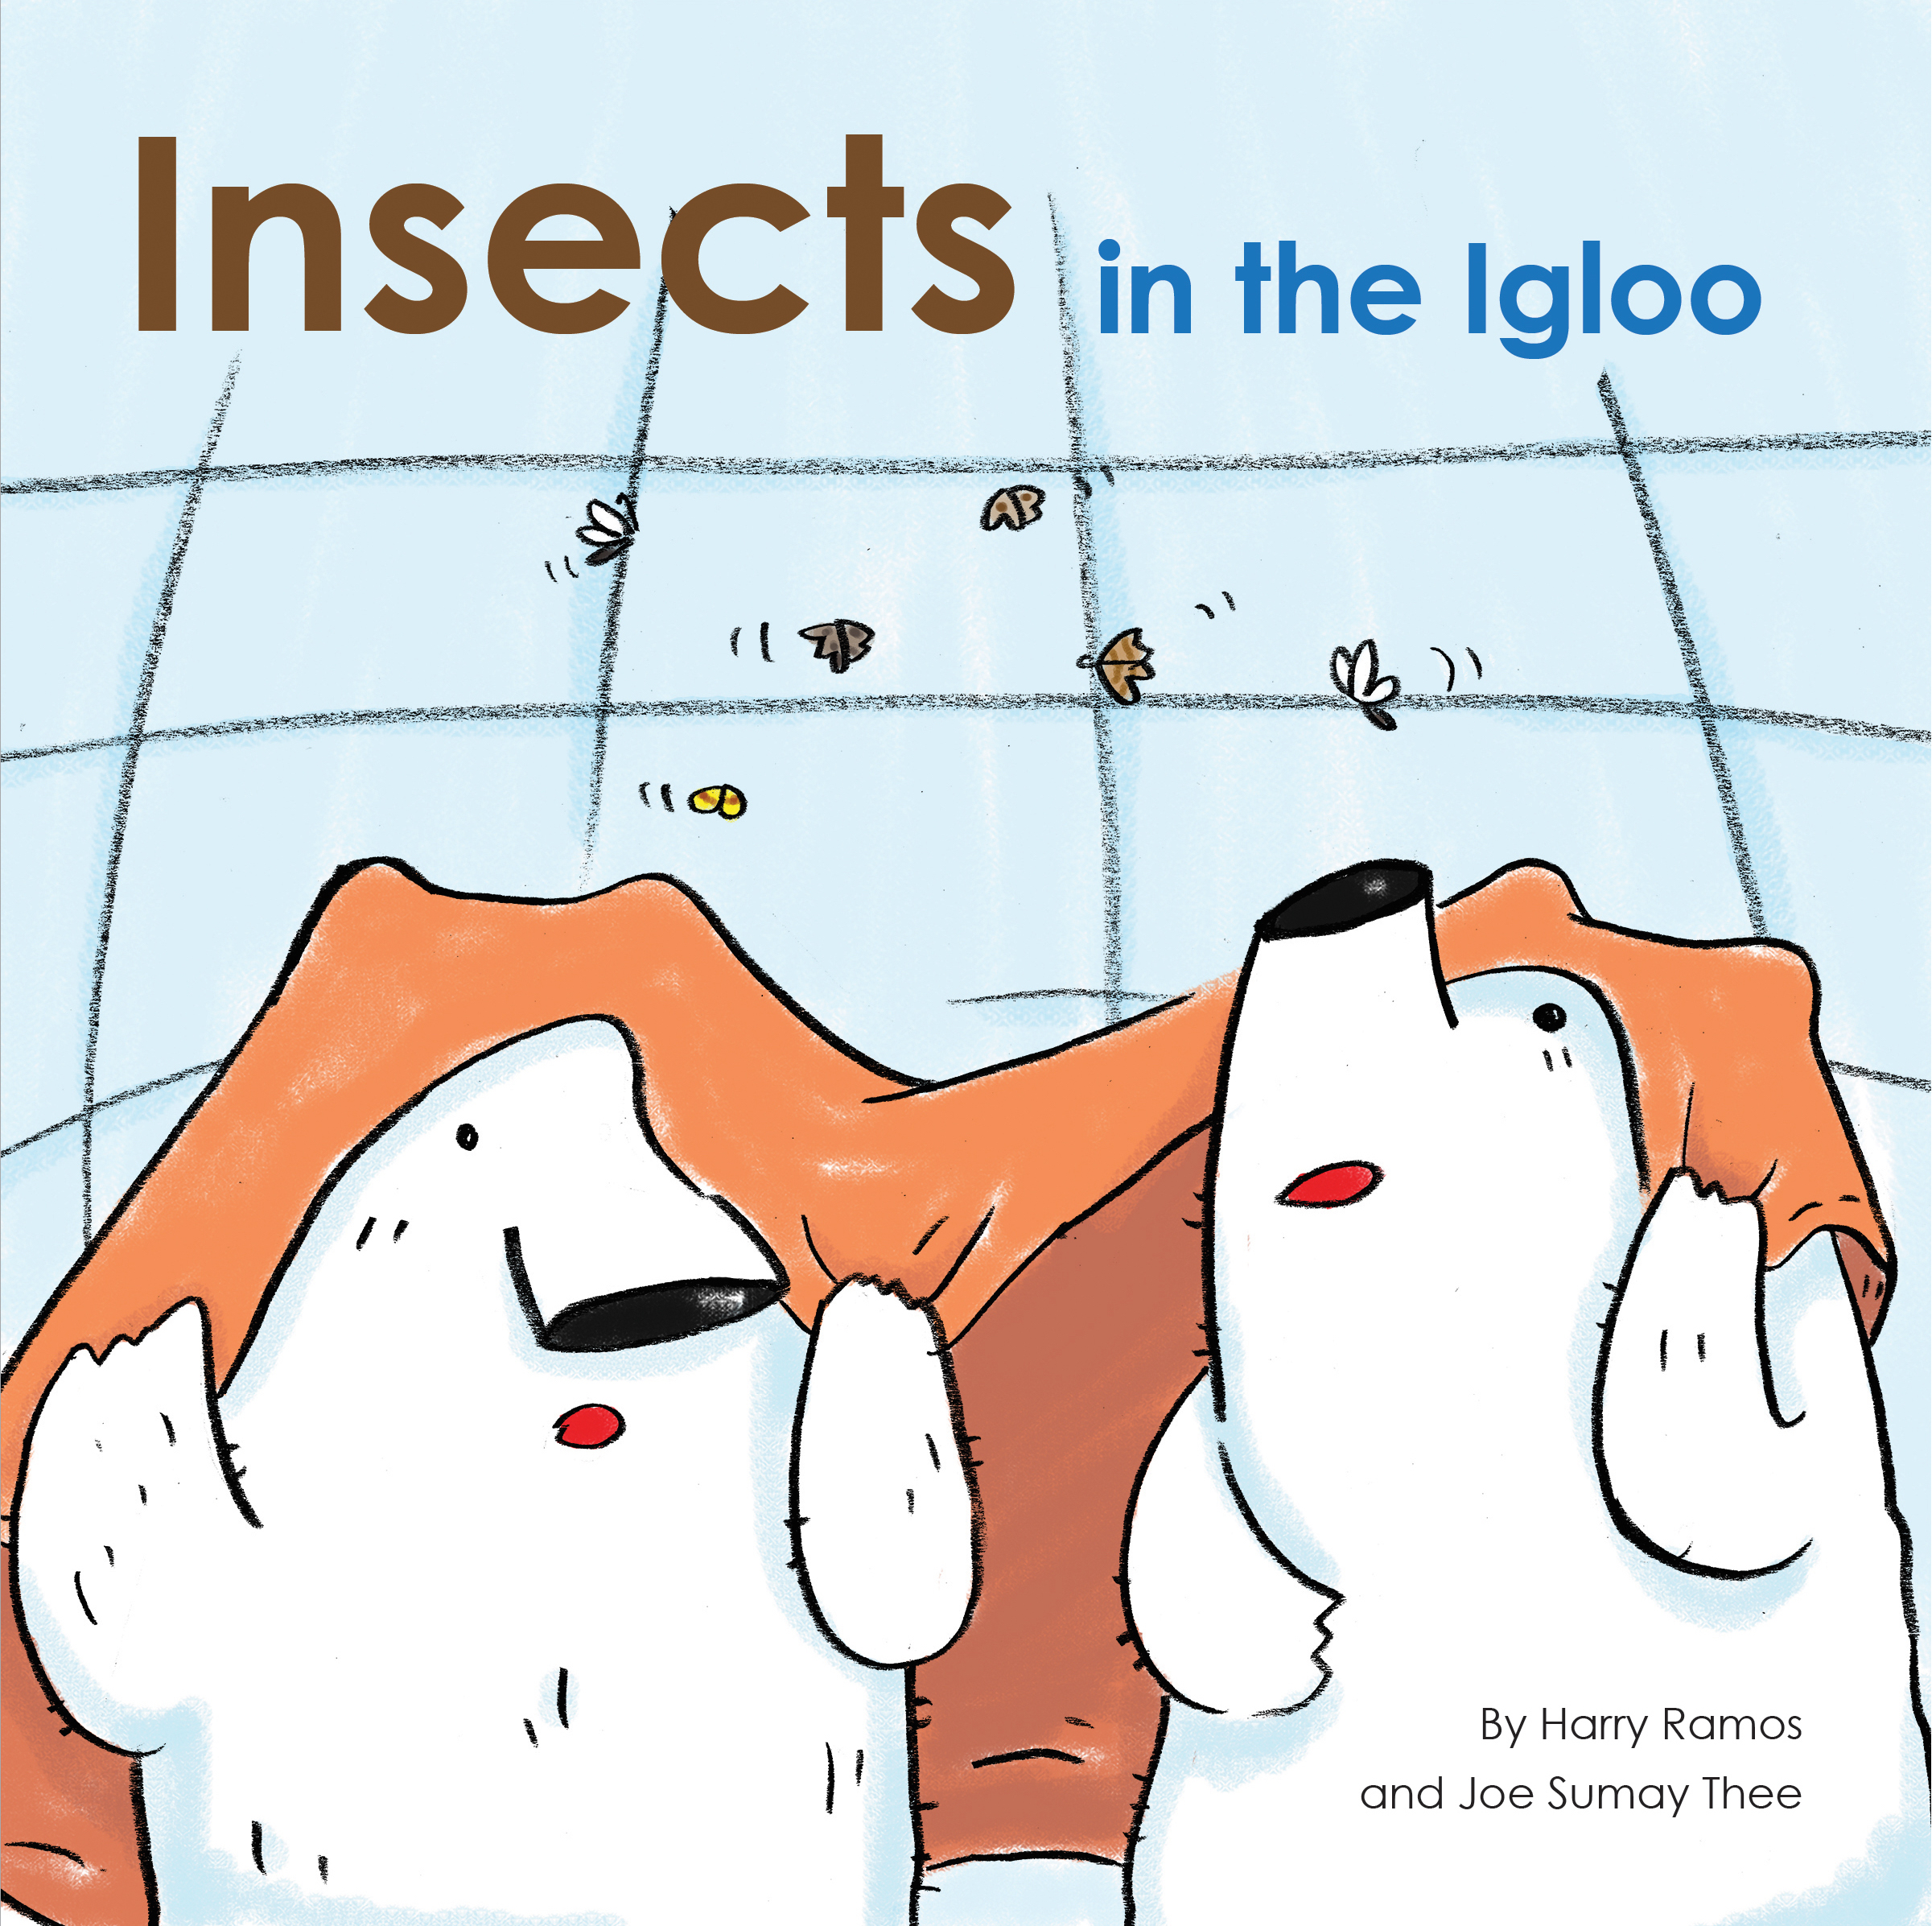 Insects-000-cover copy.jpg